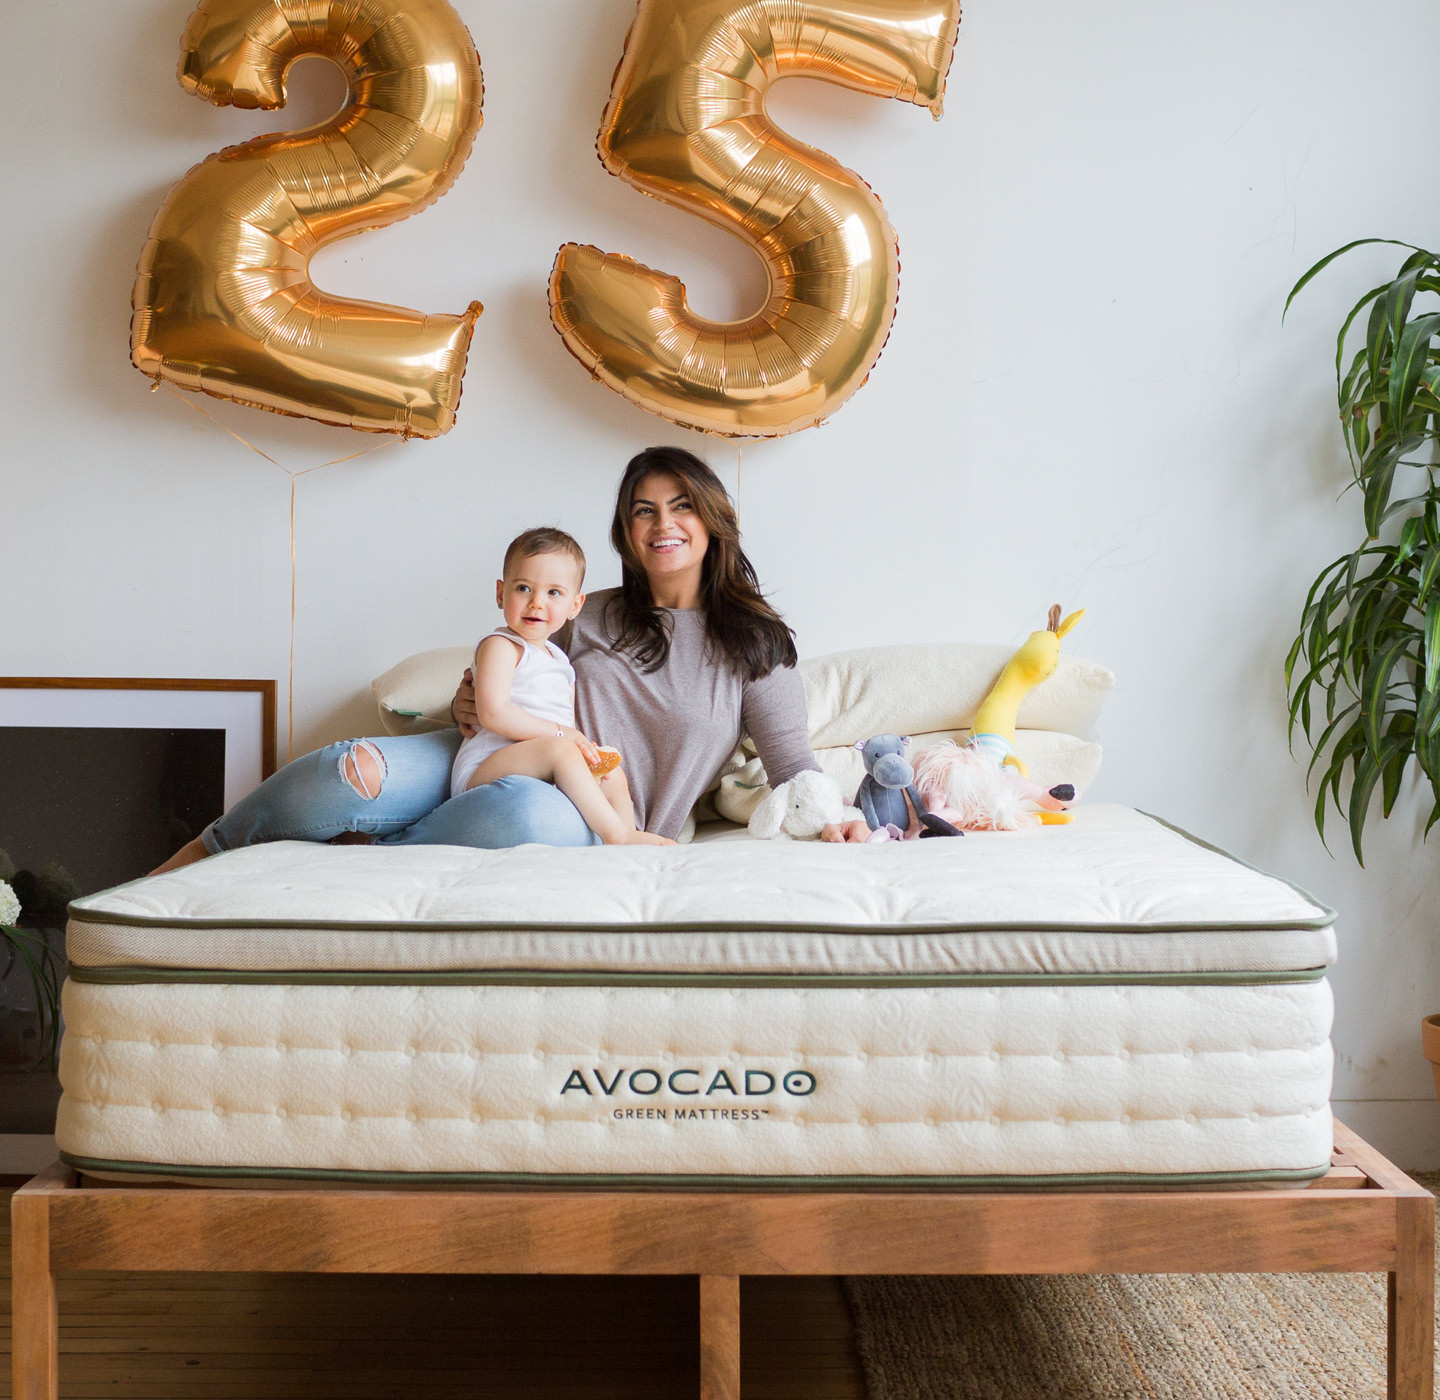 25 year Warranty Avocado Green Mattress